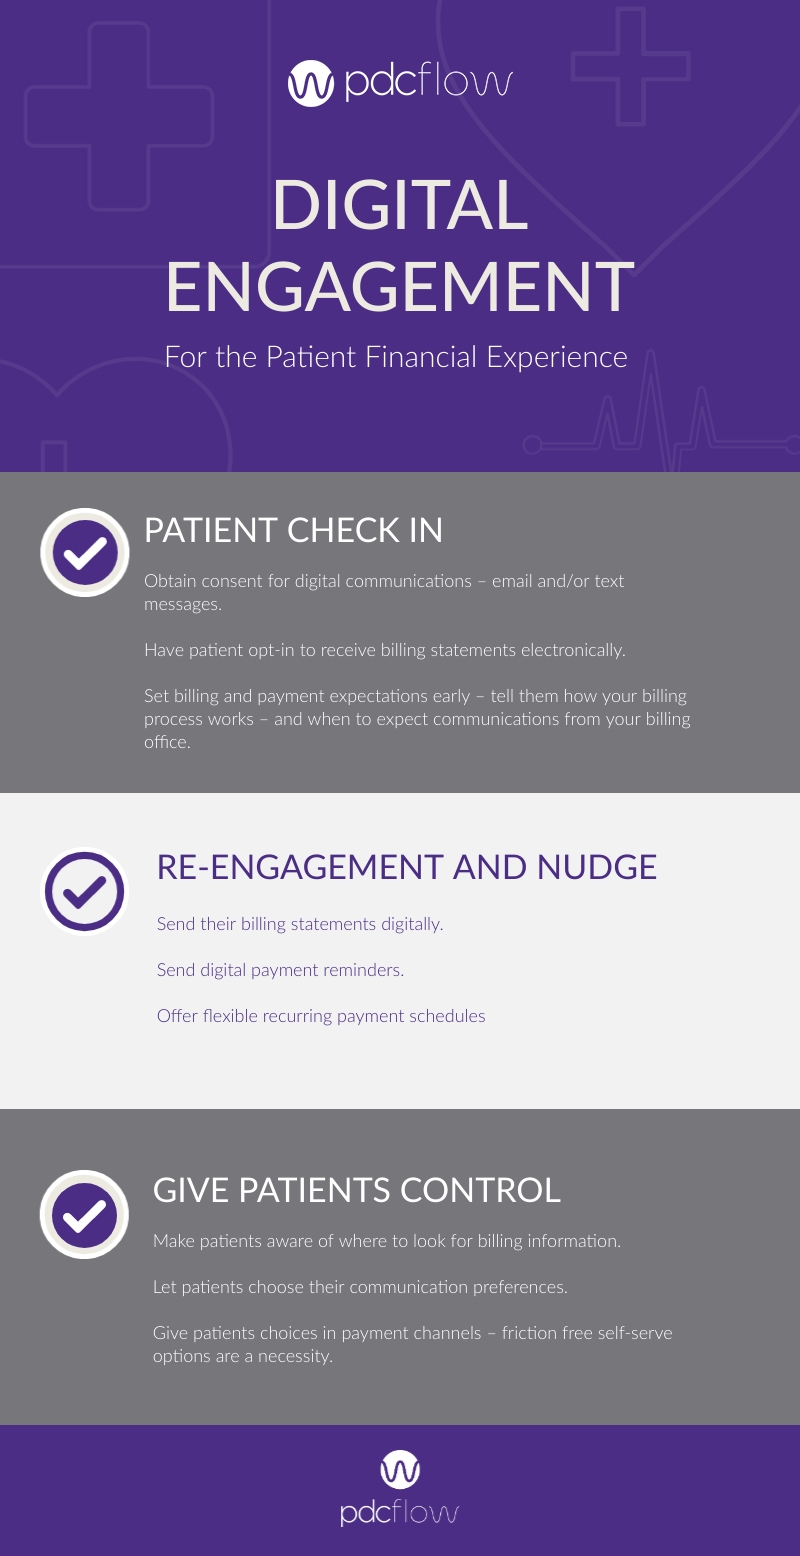 3 Strategies to Improve Patient Engagement in Payments